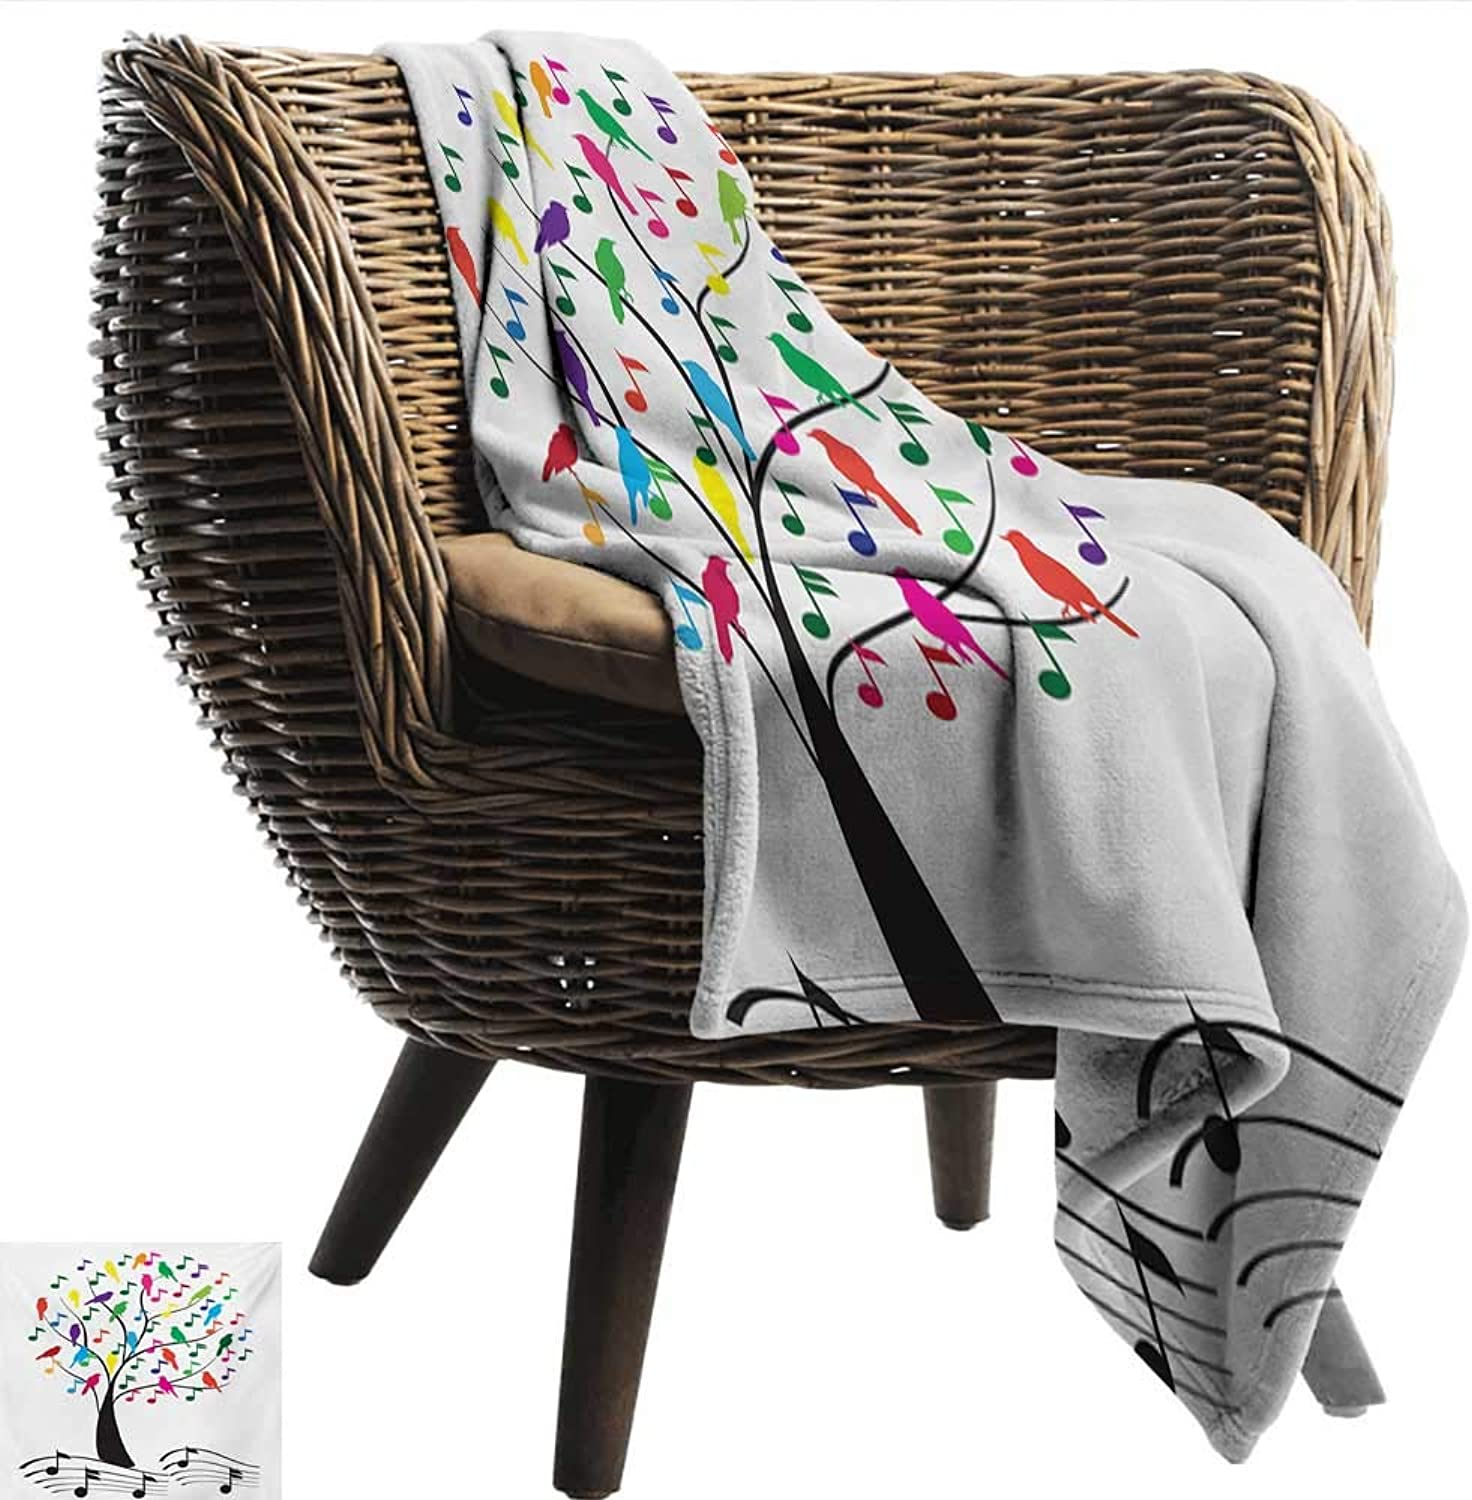 EwaskyOnline Music Flannel Blanket Tree with Musical Notes and Birds on Branch Happy Jolly Celebrating Playful Style Camping Throw,Office wrap 51  W x 60  L Multicolor